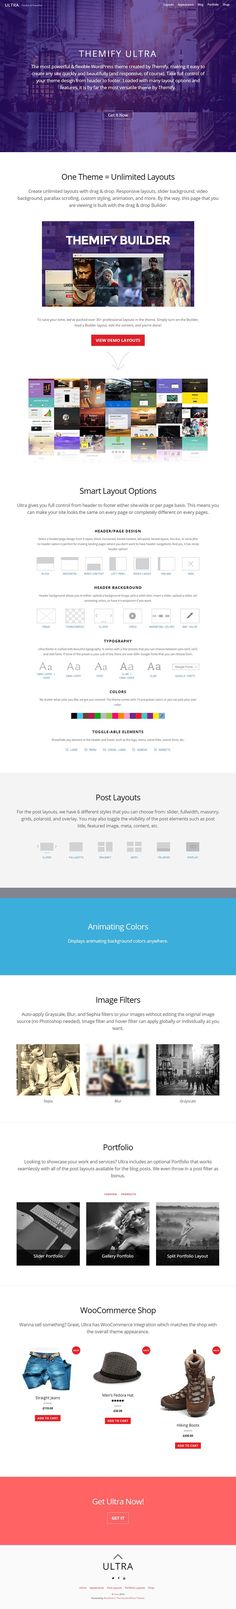 Ultra is a responsive, flexible and powerful WordPress theme that can be used to create any site quickly and beautifully. Cusomizable from Header to Footer Premium Wordpress Themes, Flexibility, Purpose, Back Walkover